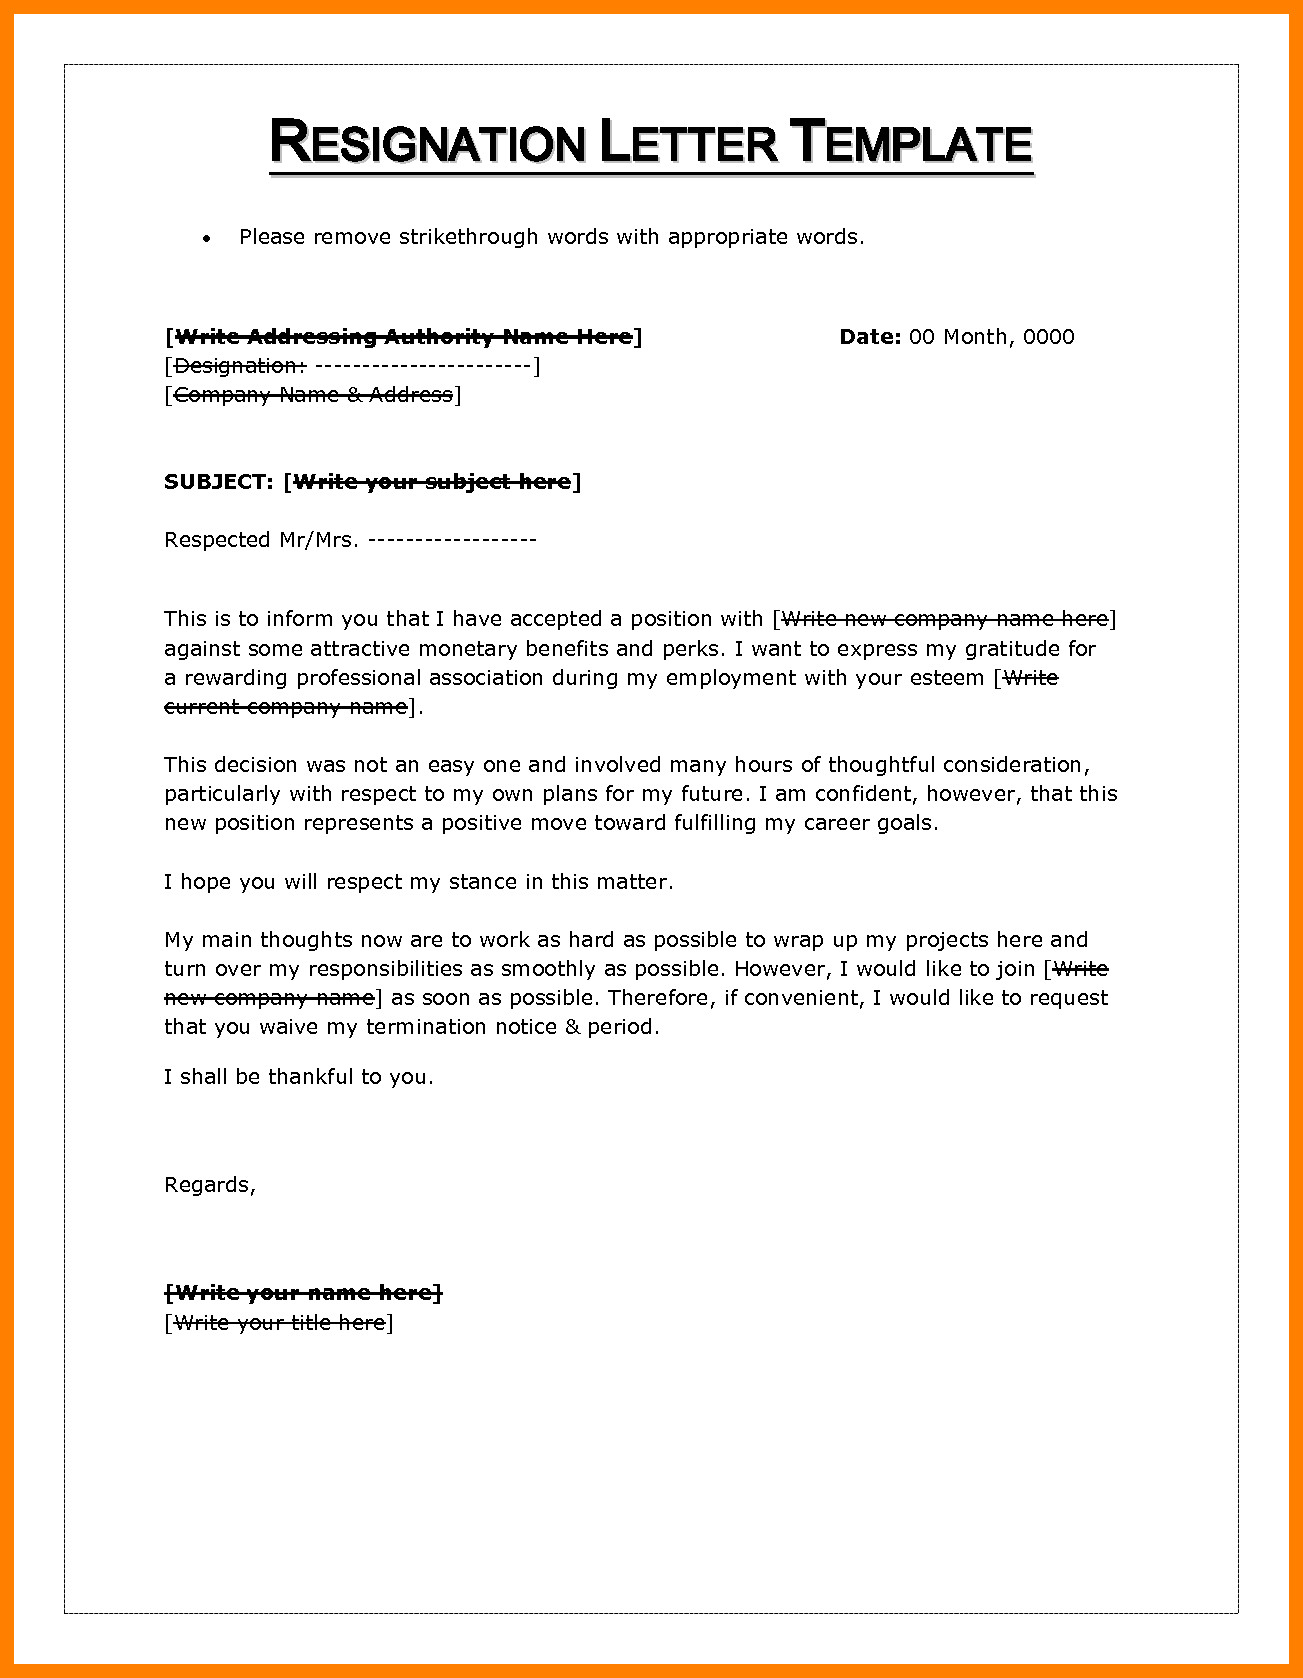 Letter Of Resignation Template Word 10 Letter Of Resignation Word Template